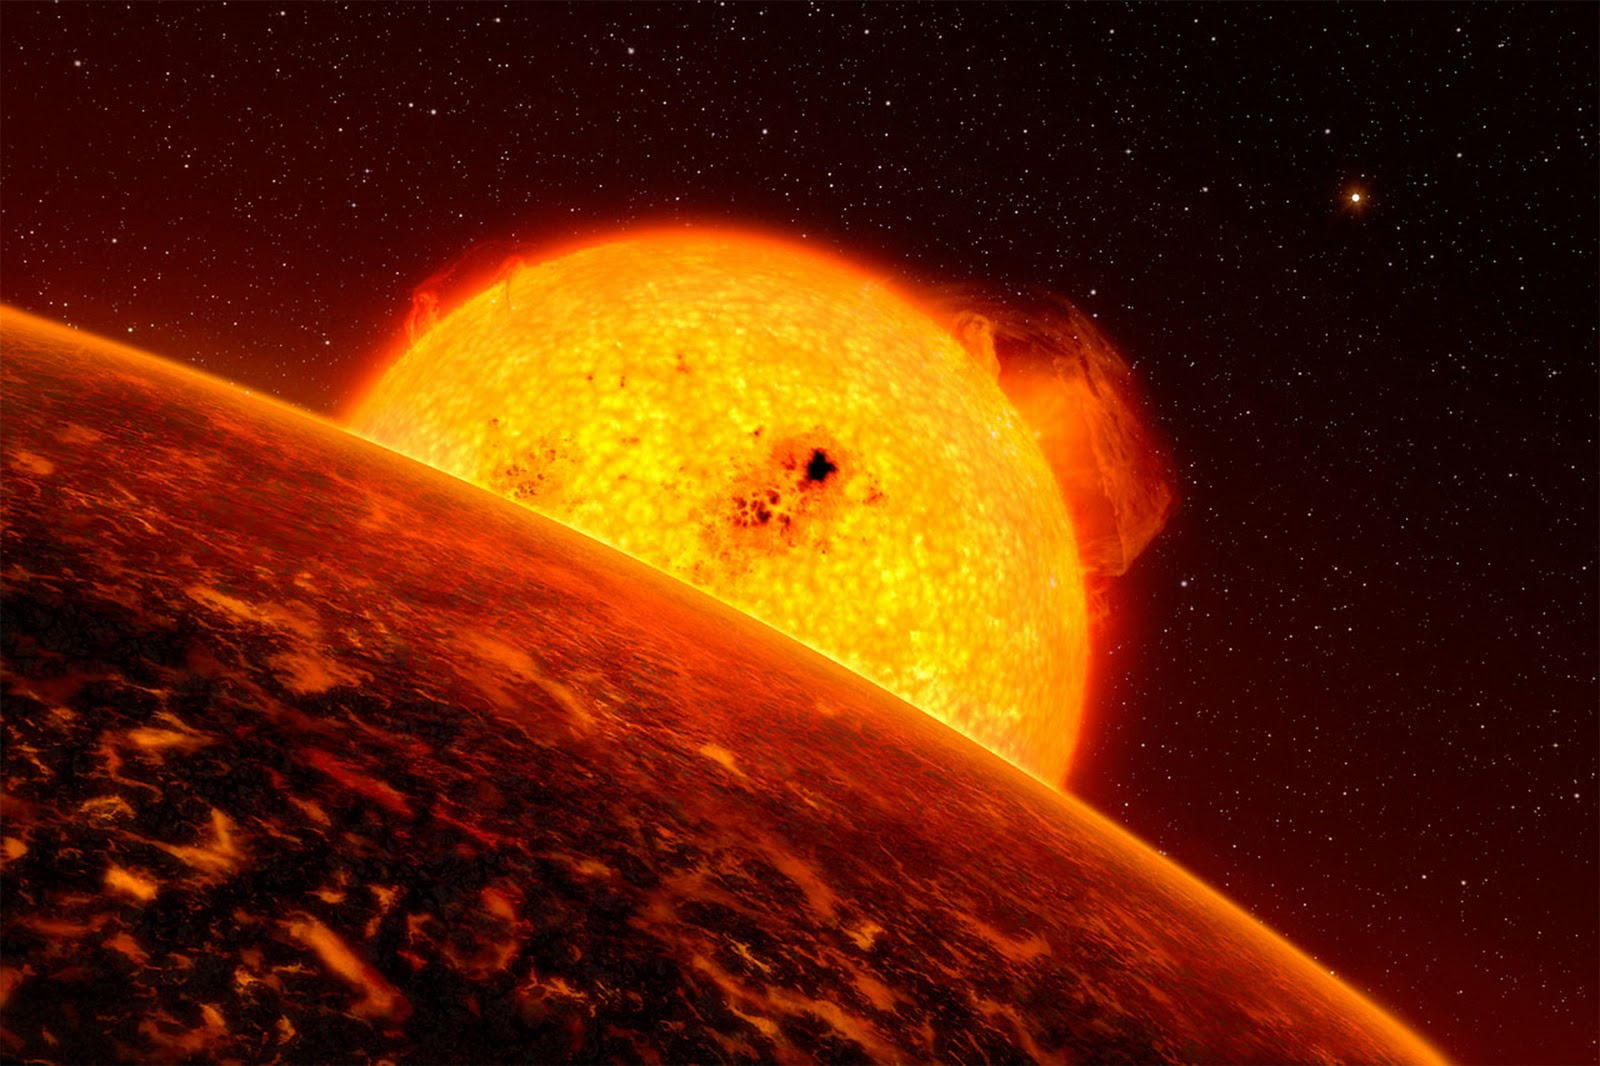 nasa exoplanet science institute - photo #38